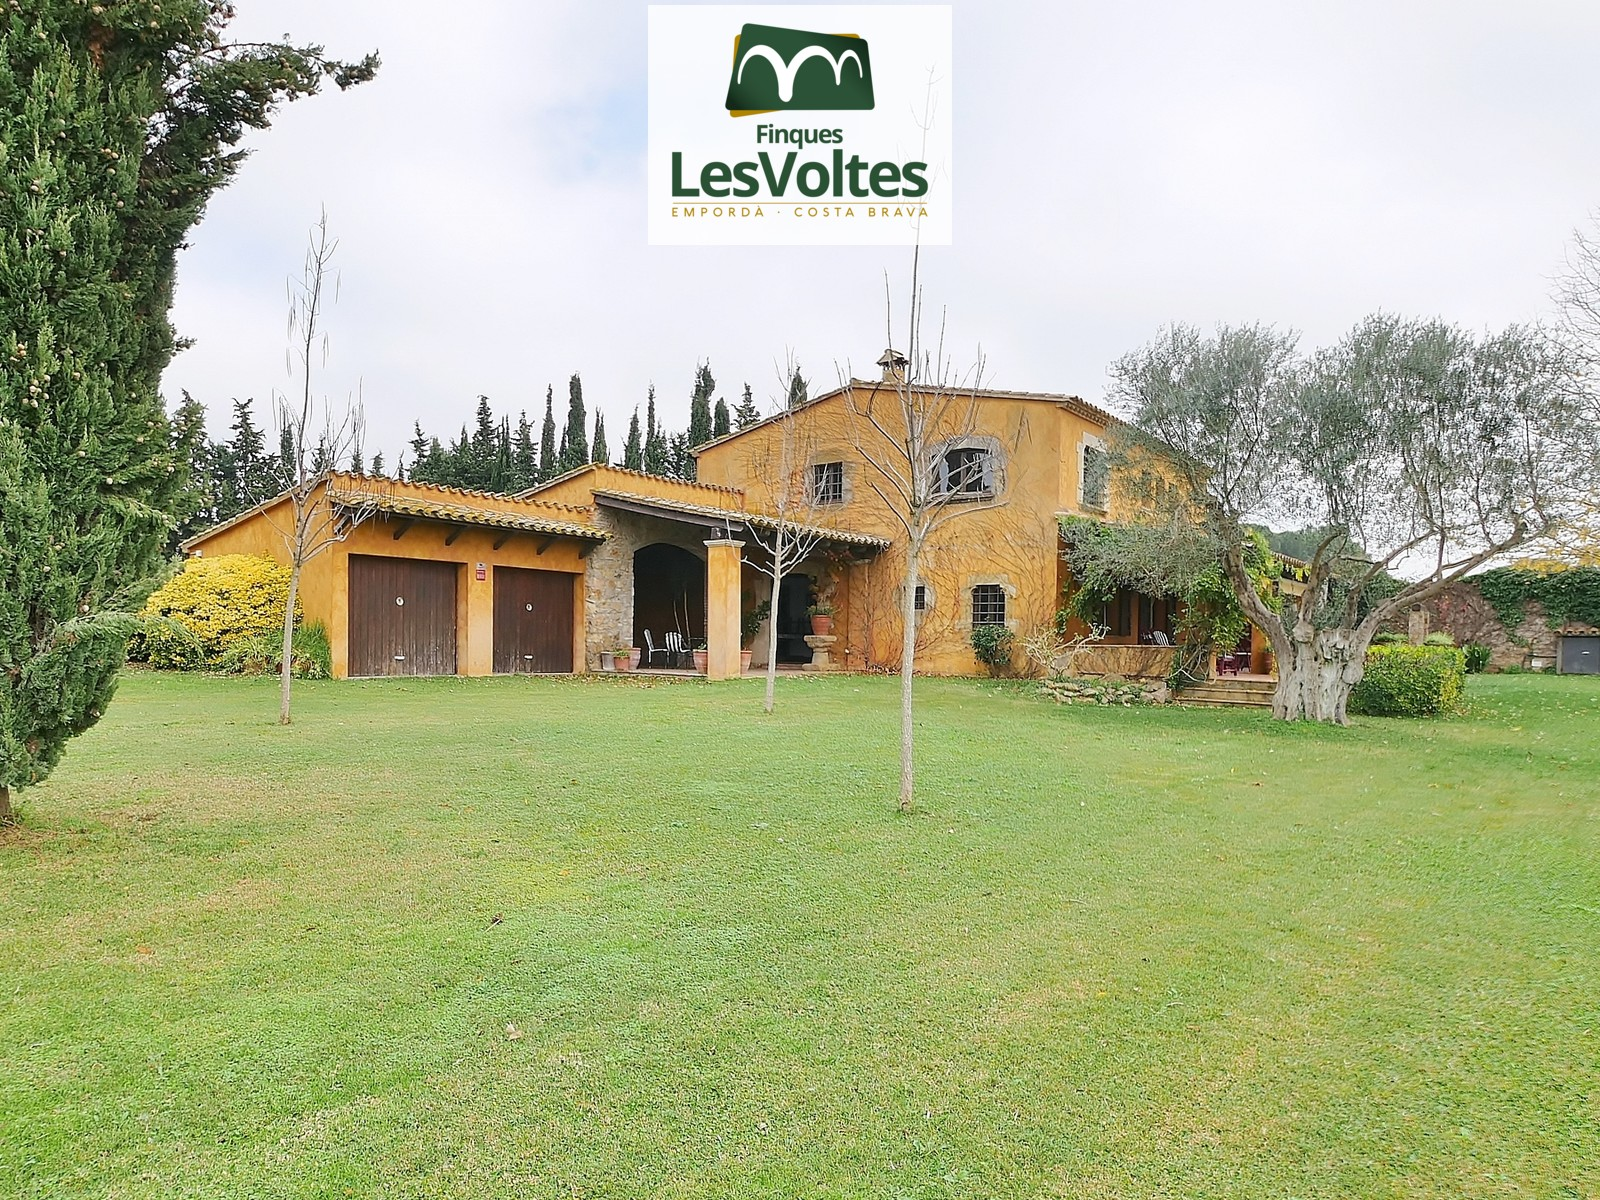 Magnificent 480 m2 rustic house for sale in Baix Empordà, just 3 km from the Llafranc and Tamariu beaches, and very close to